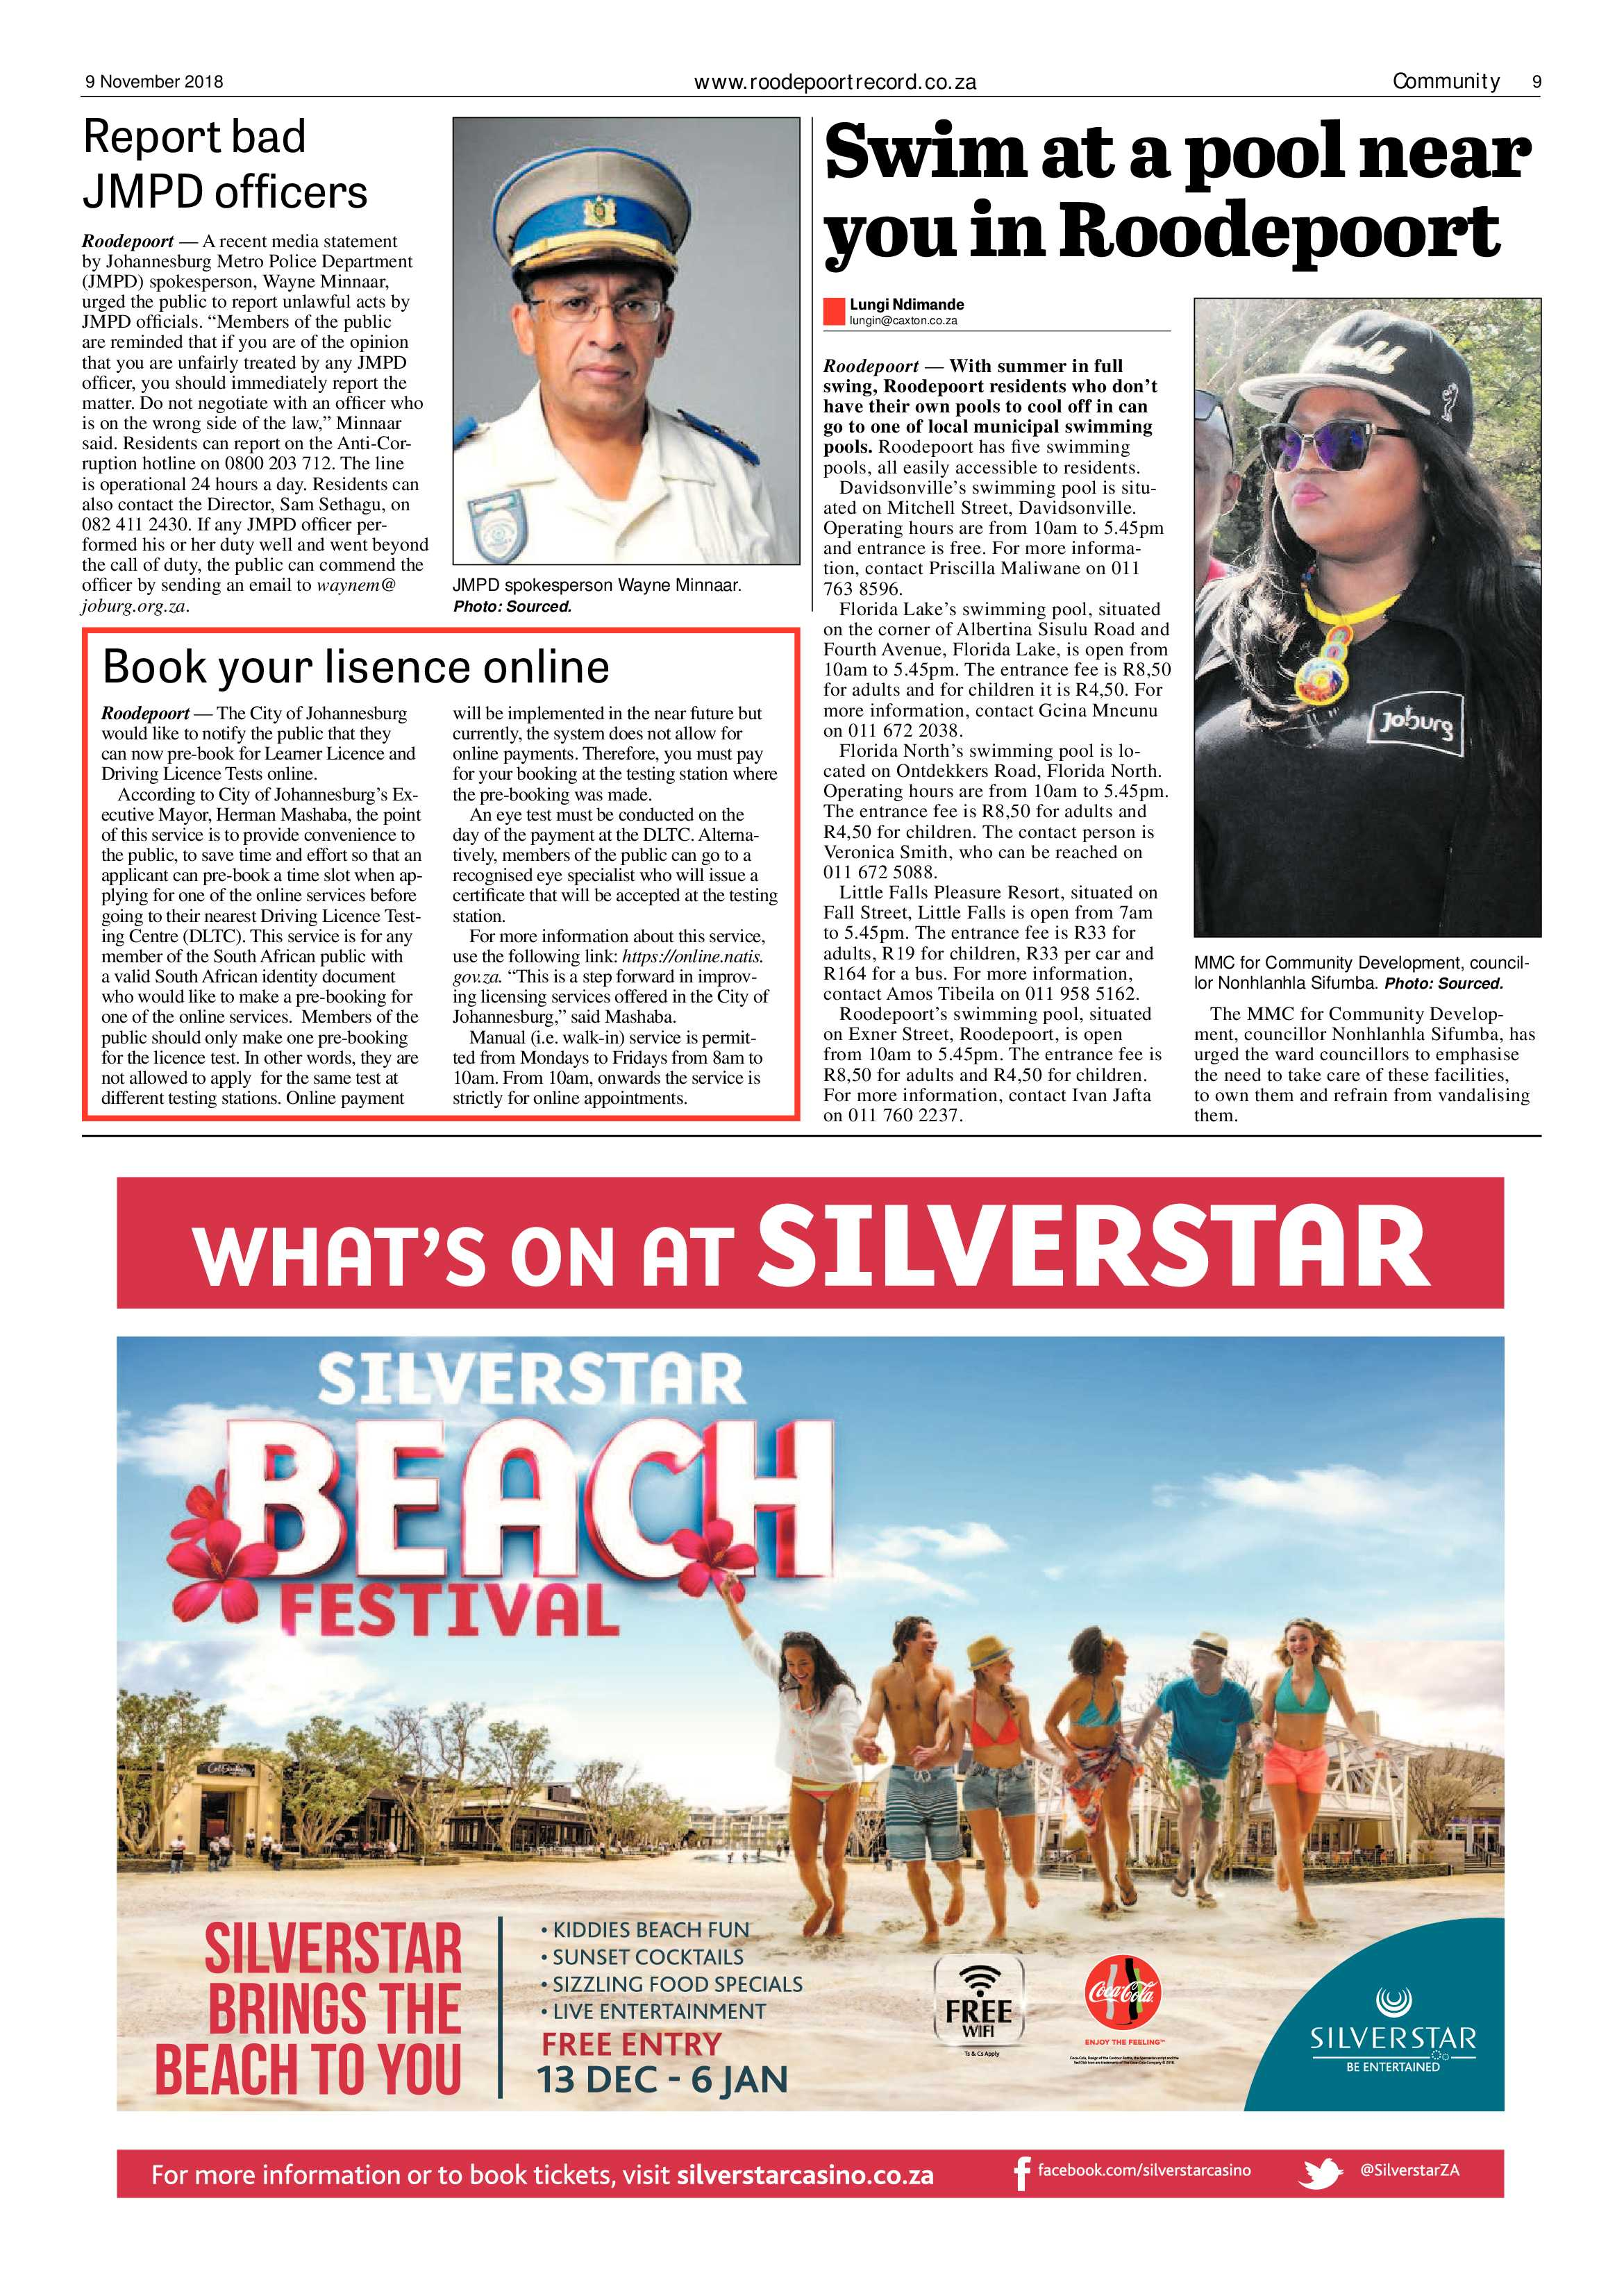 roodepoort-record-9-november-2018-epapers-page-9